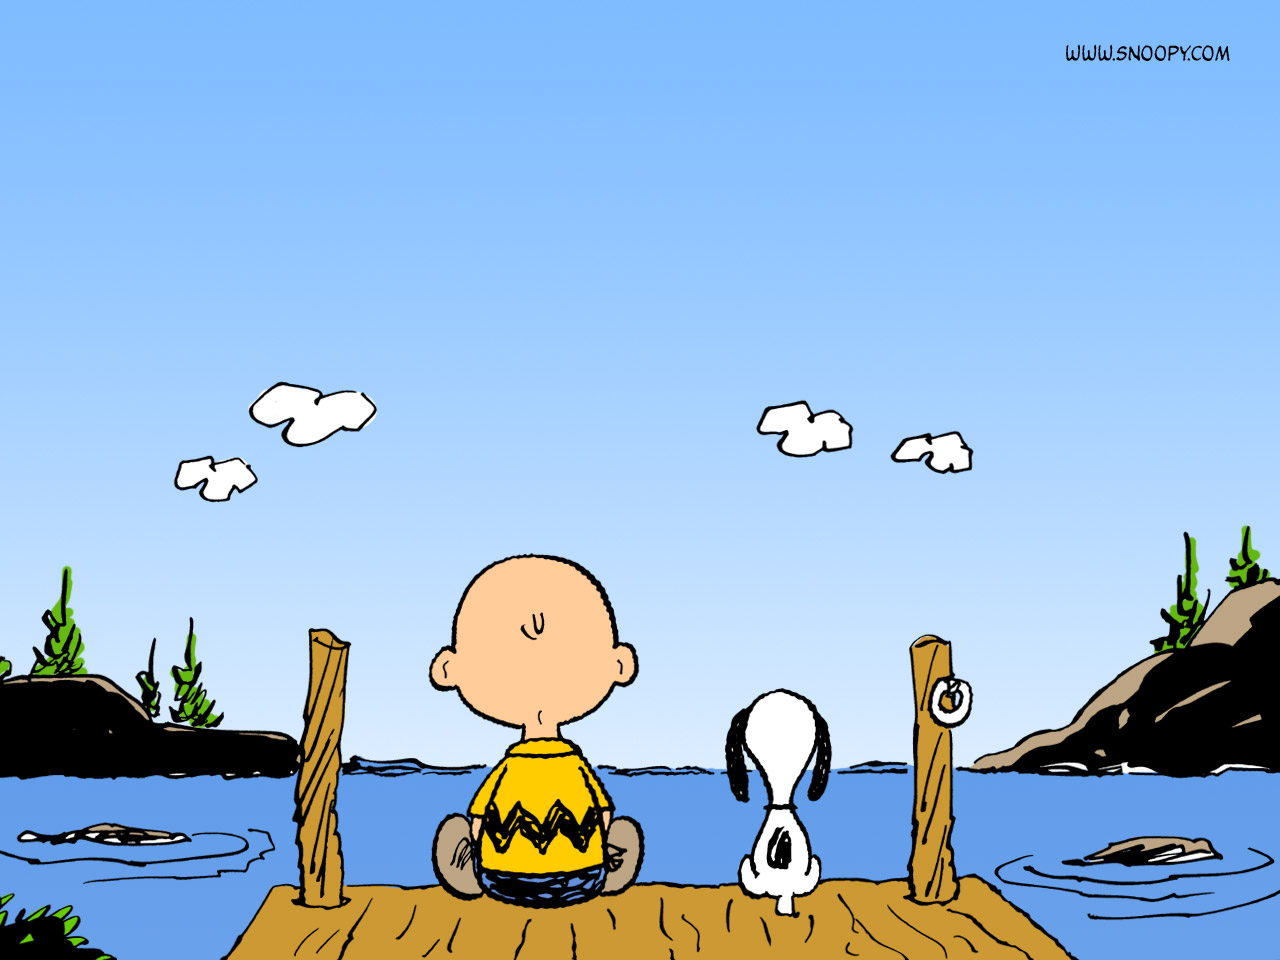 snoopy pic